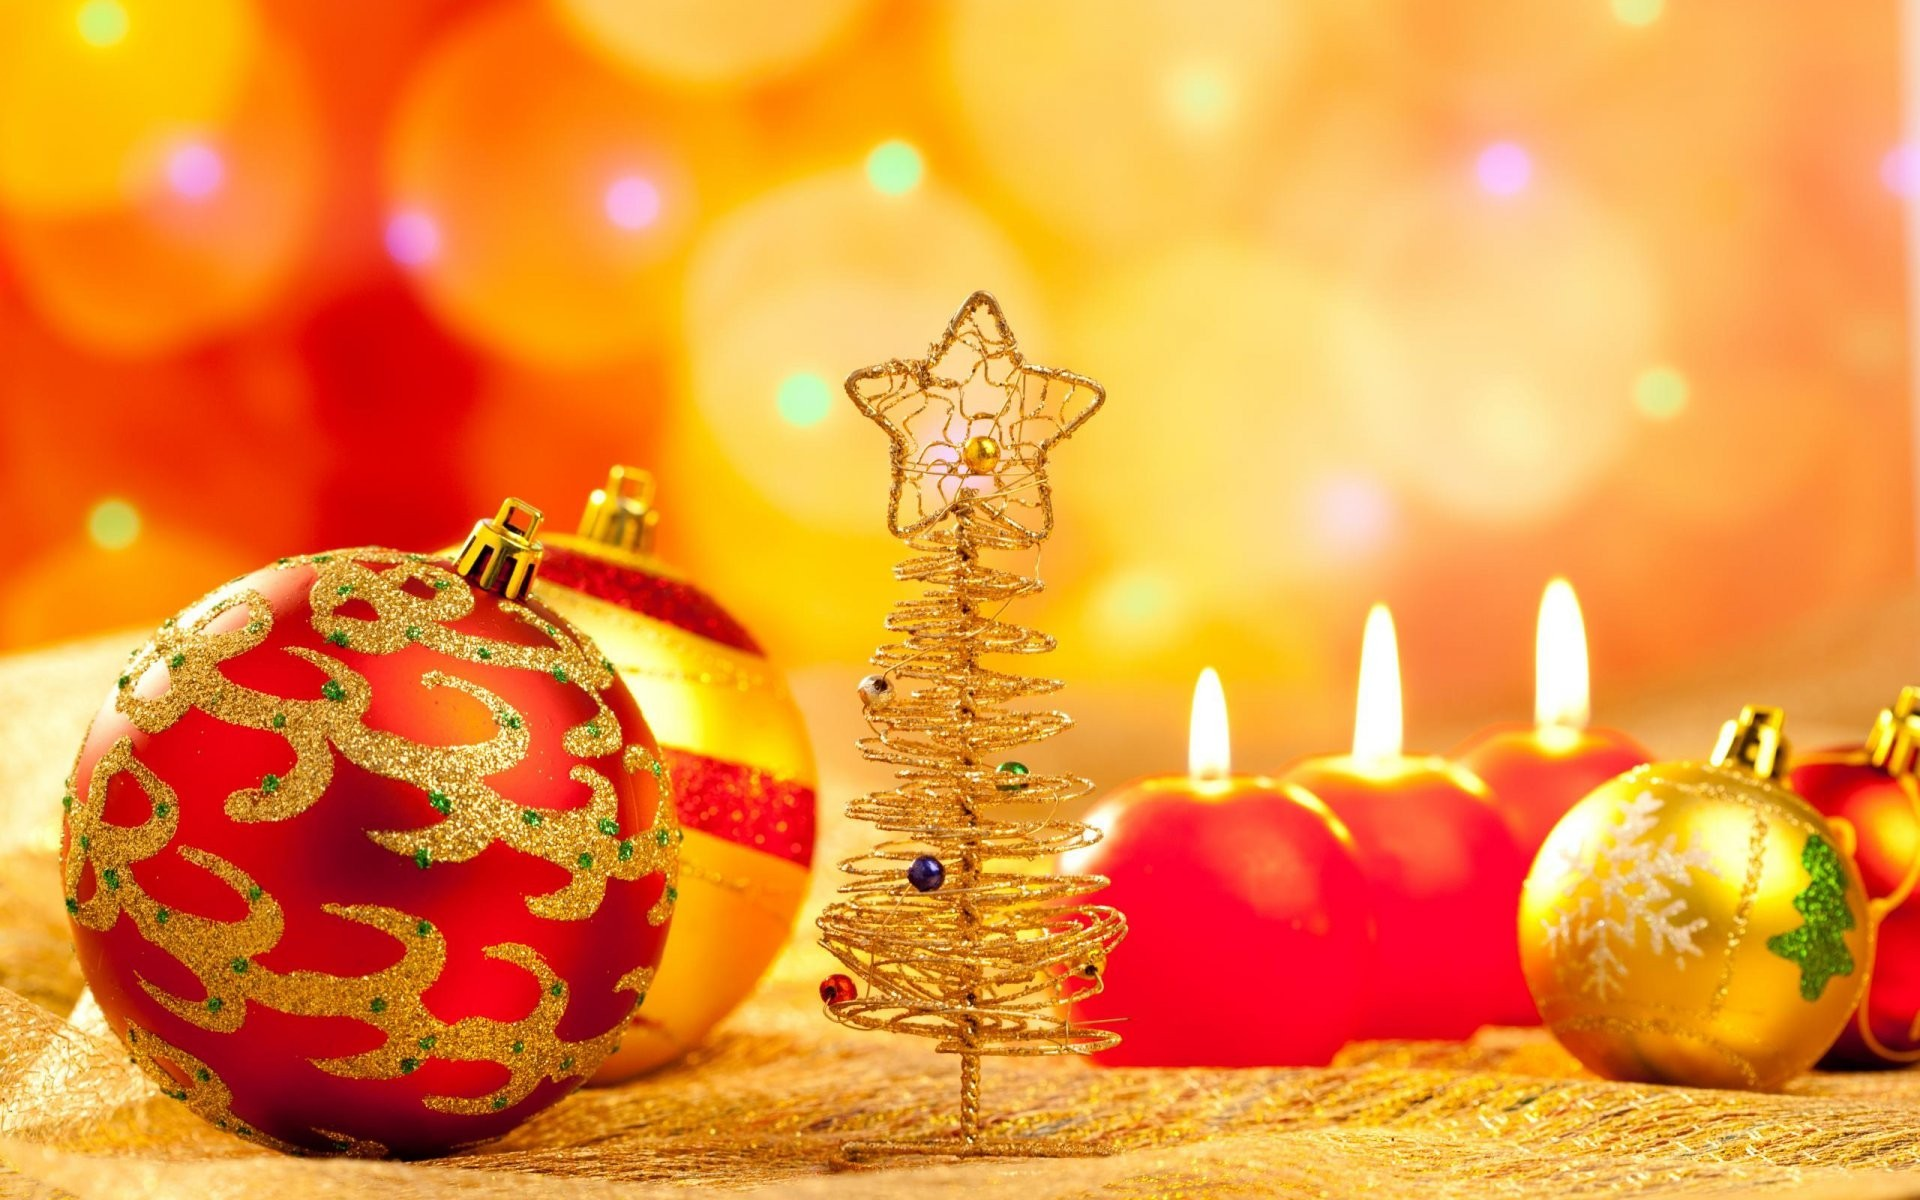 Image: Balls, candles, christmas tree, flare